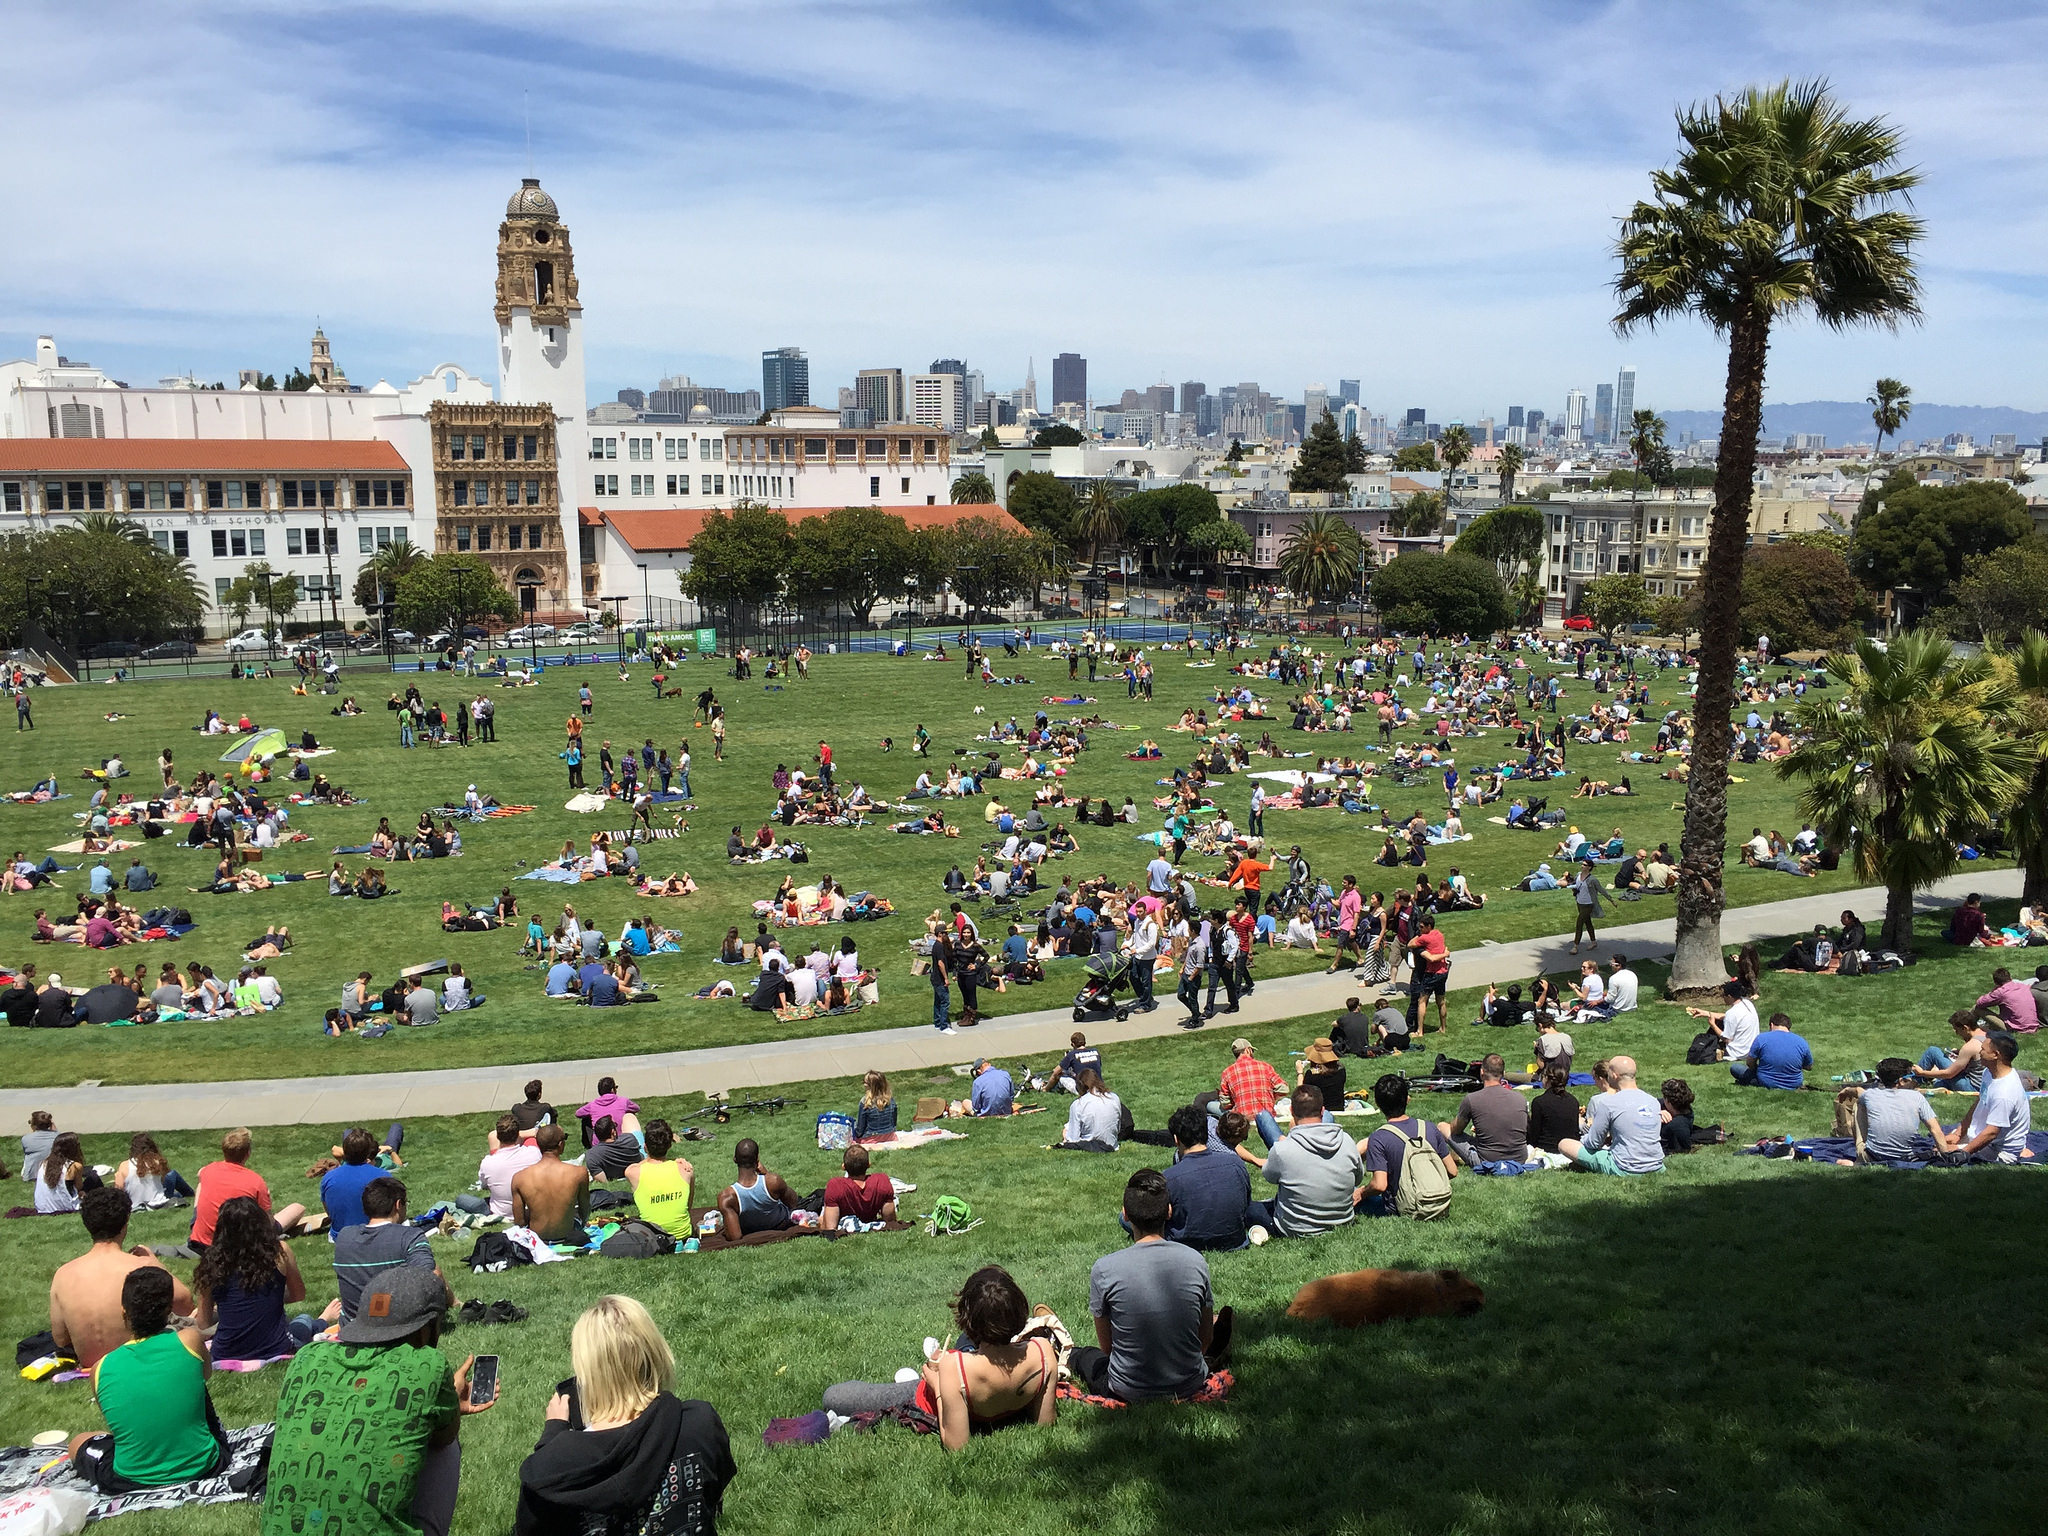 The 10 best Instagram photos from Dolores Park's re-opening weekend